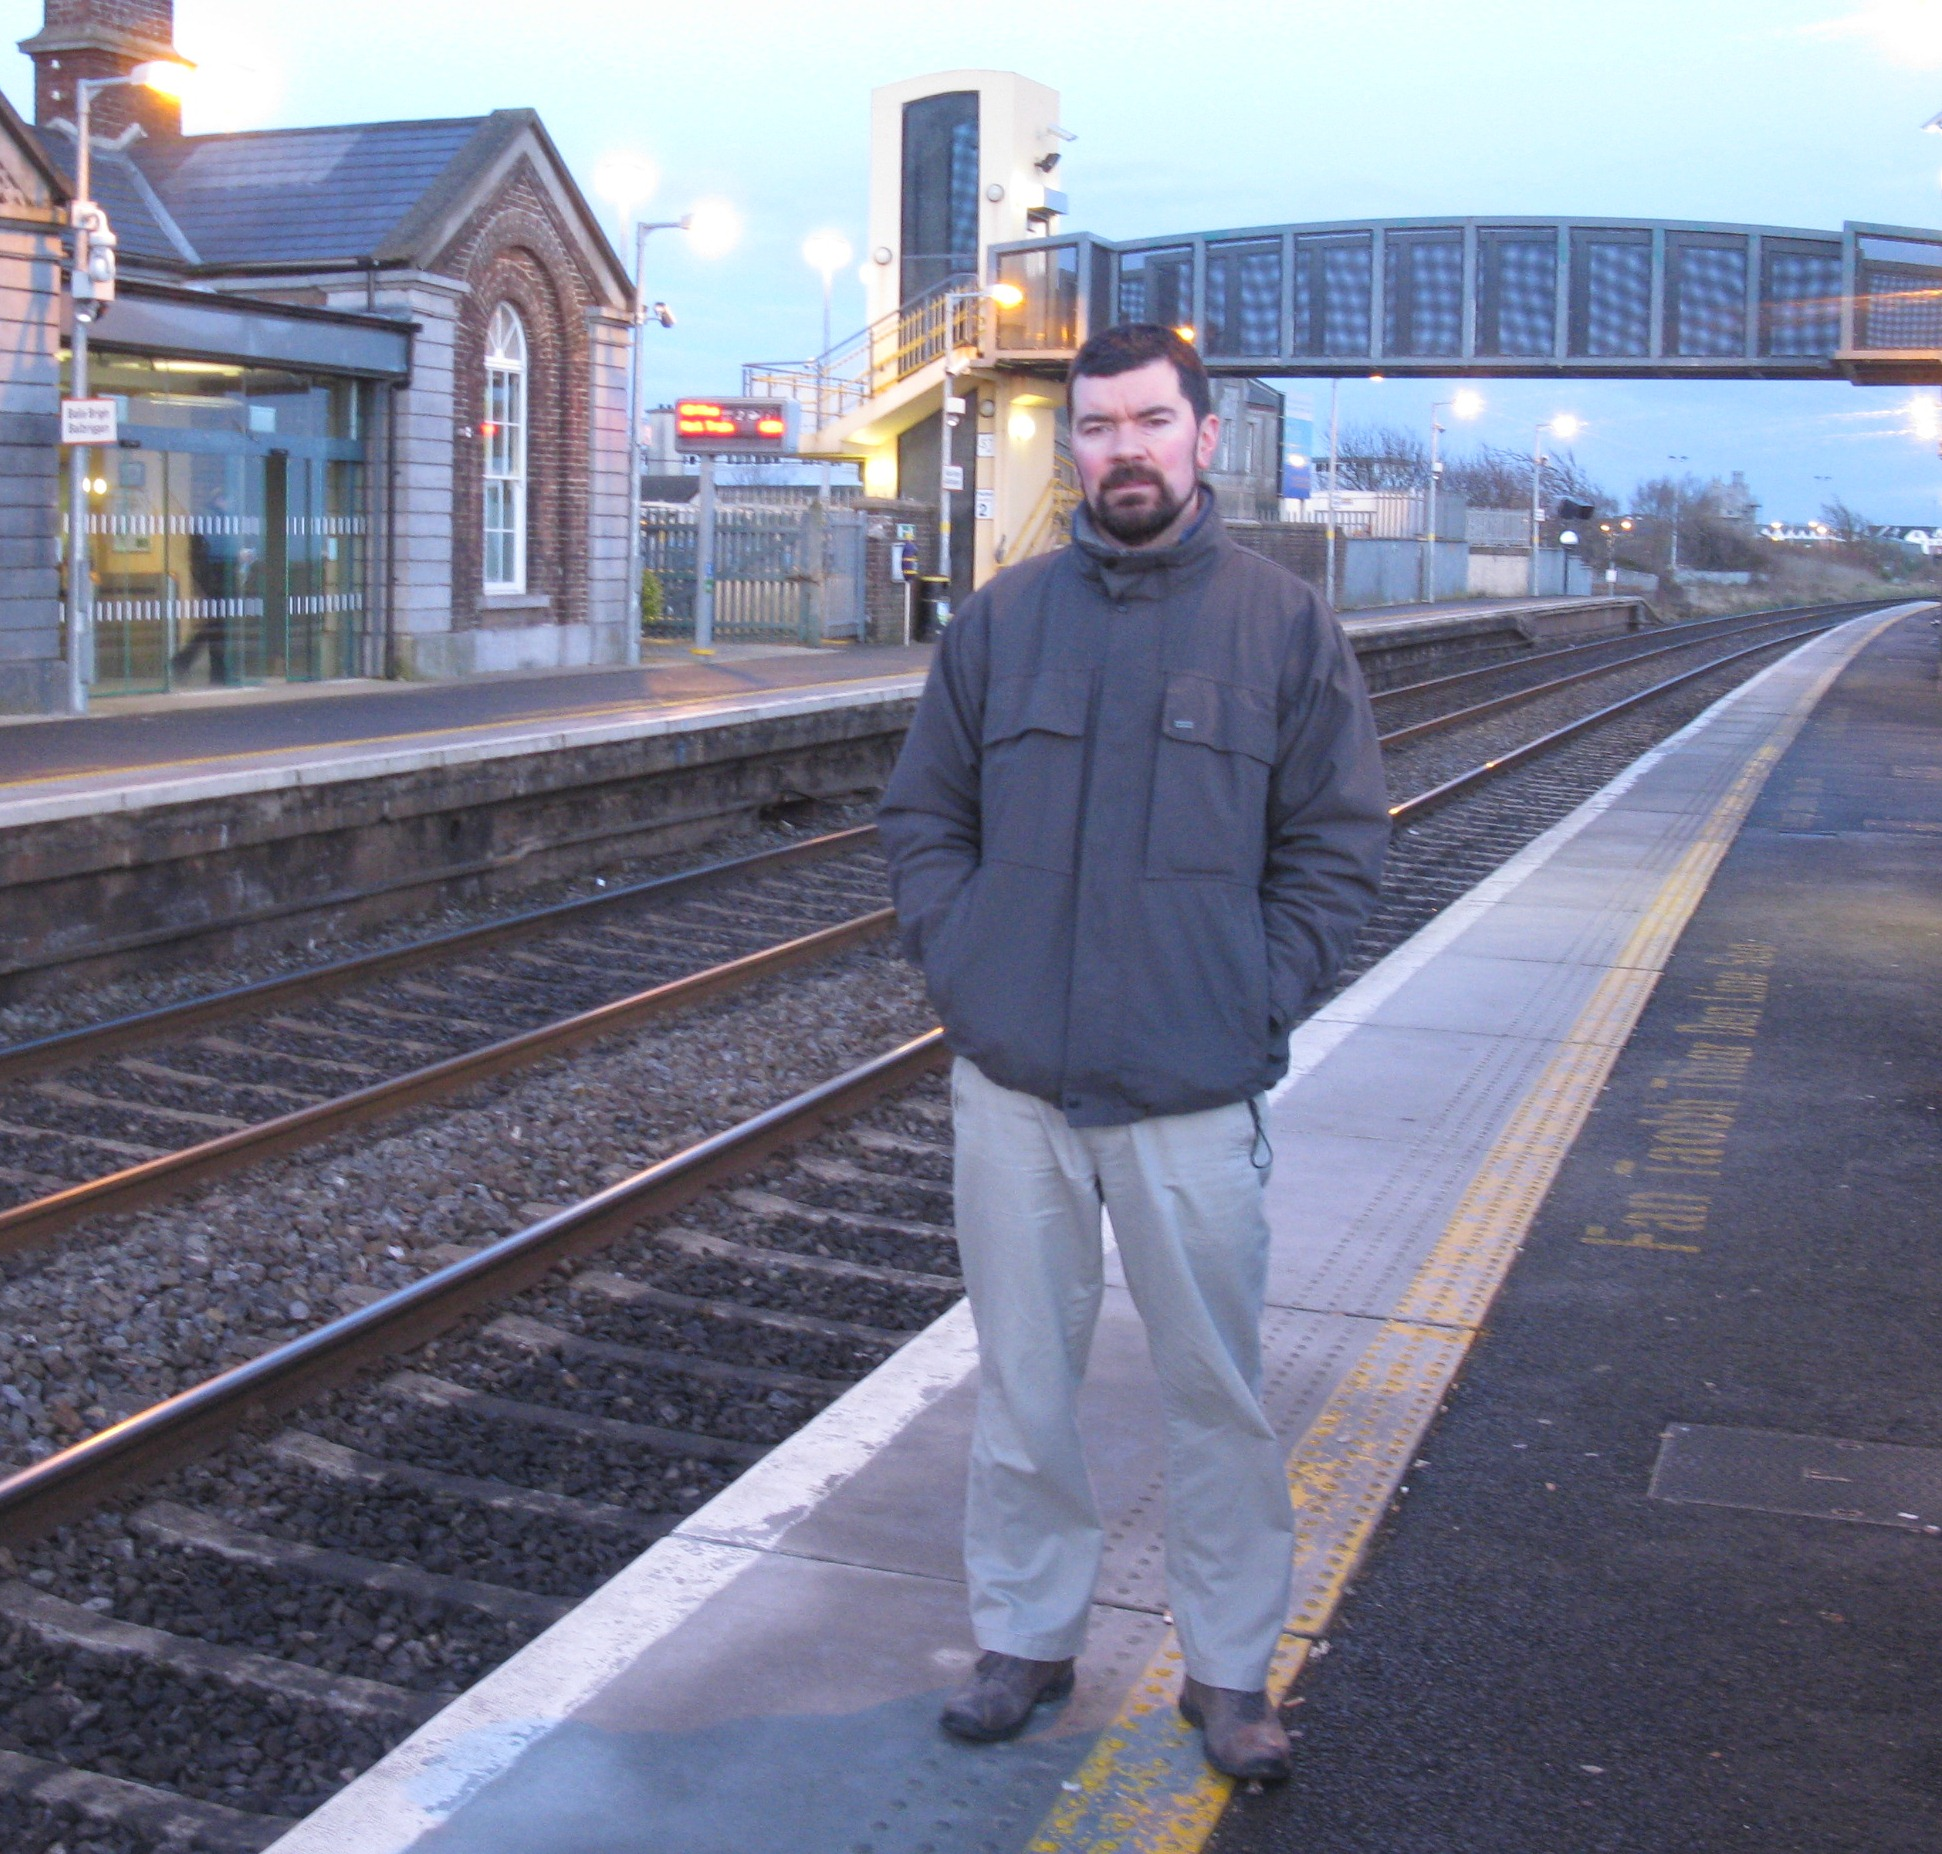 Joe O'Brien at Balbriggan Train Station